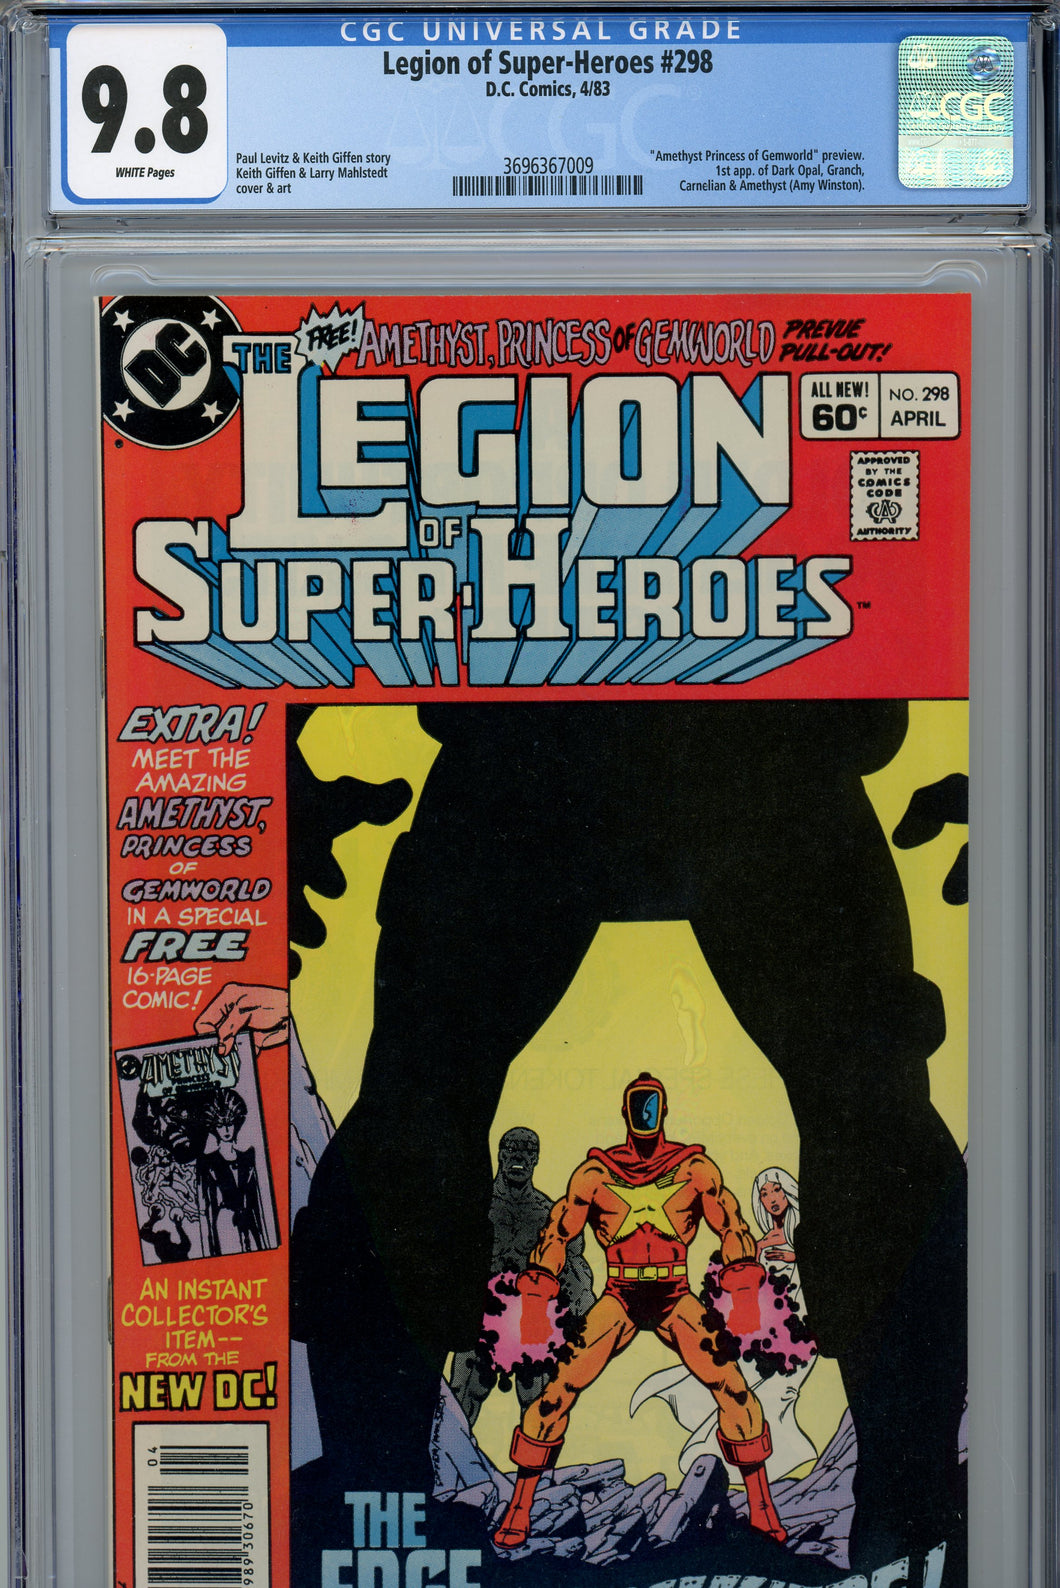 Legion of Super-Heroes #298 CGC 9.8 1st Appearance of Amethyst